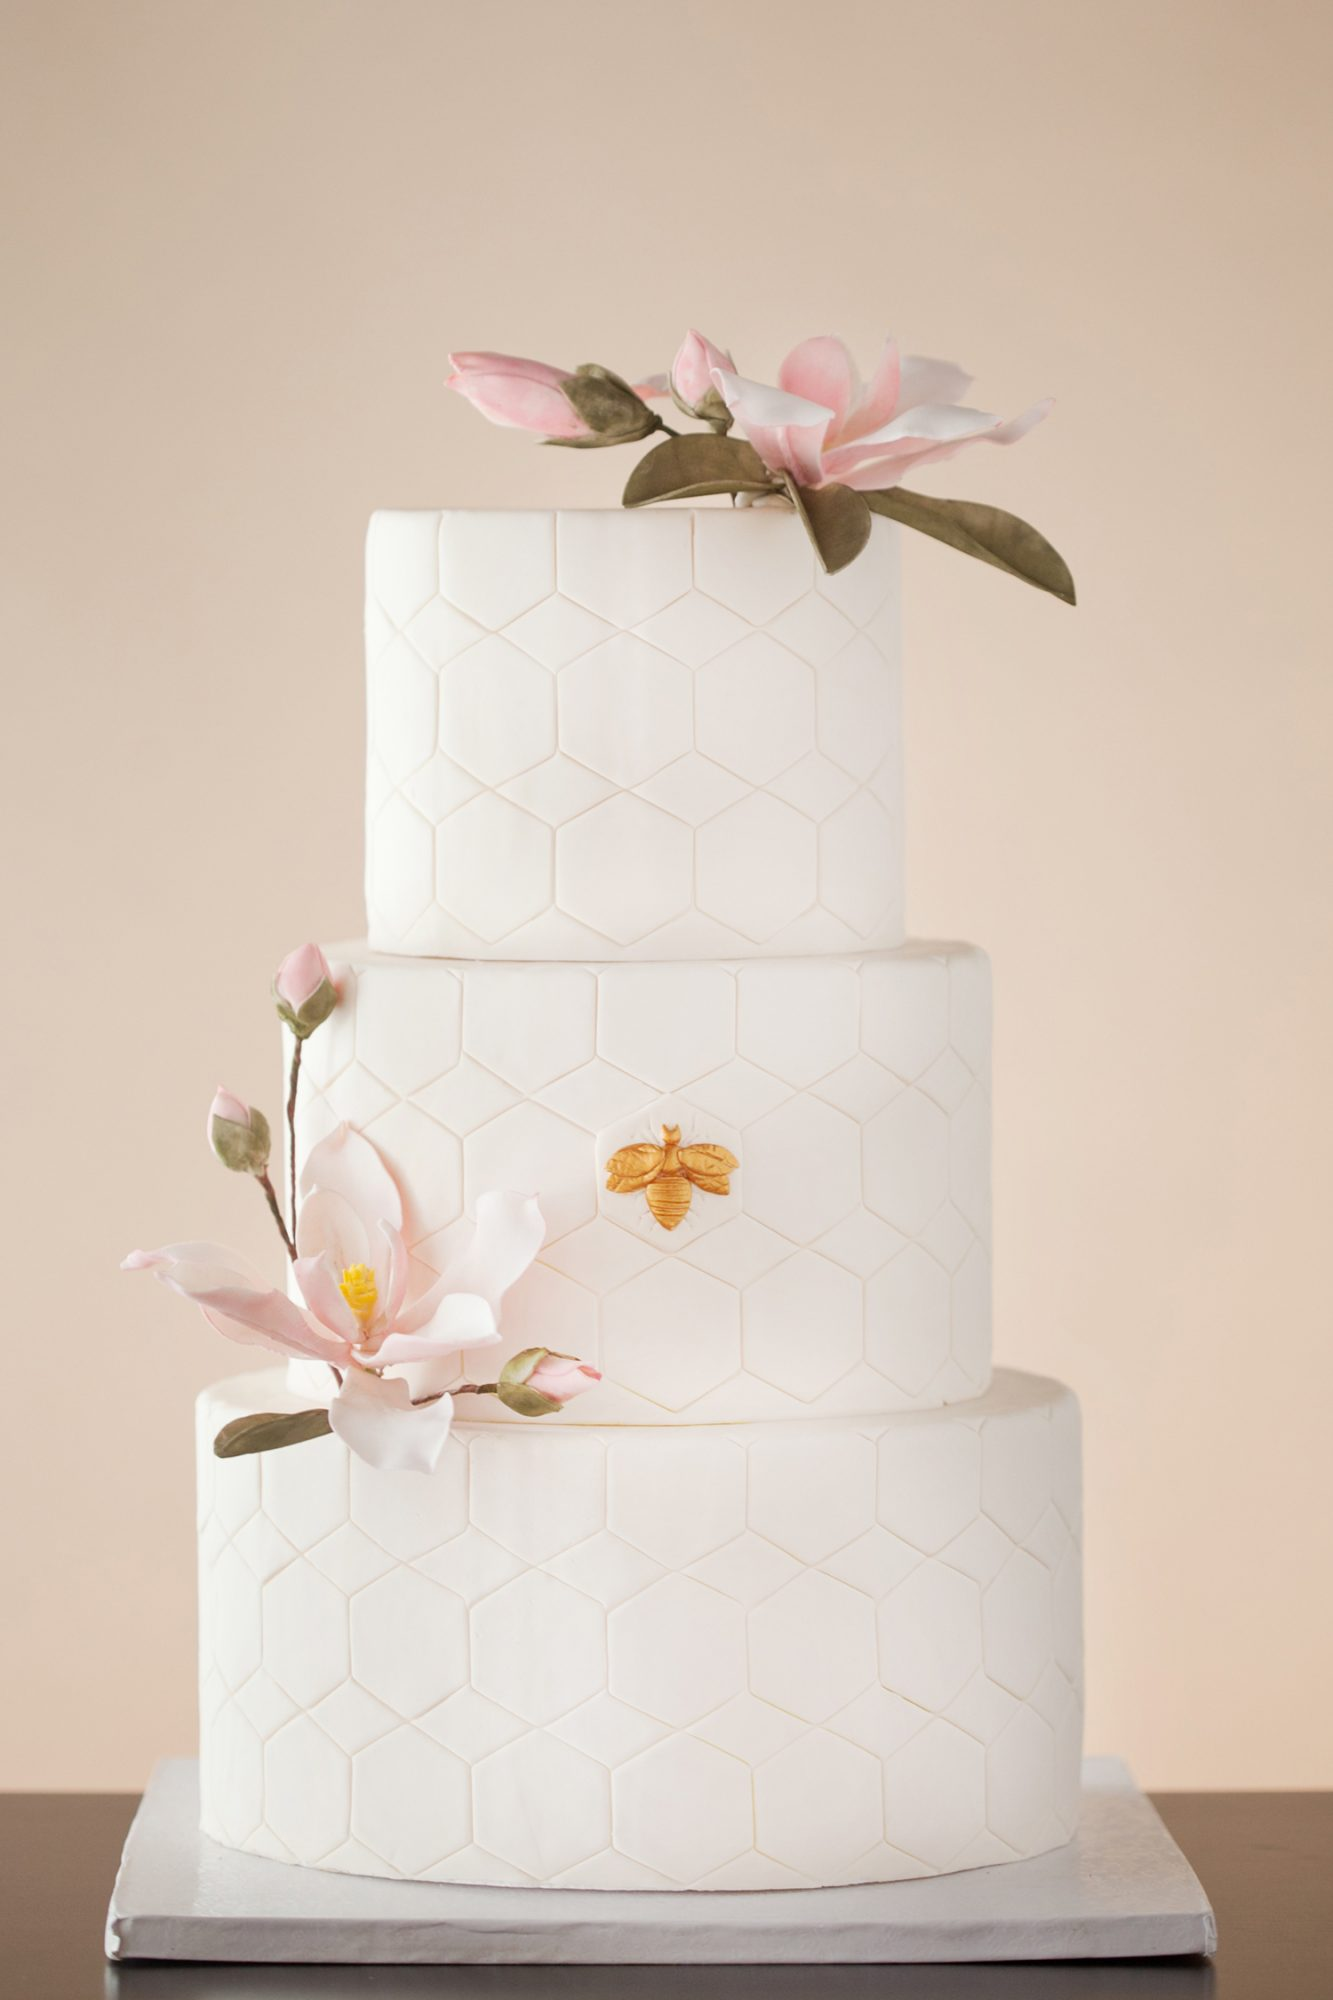 bee wedding ideas cake with flowers and hexagon pattern